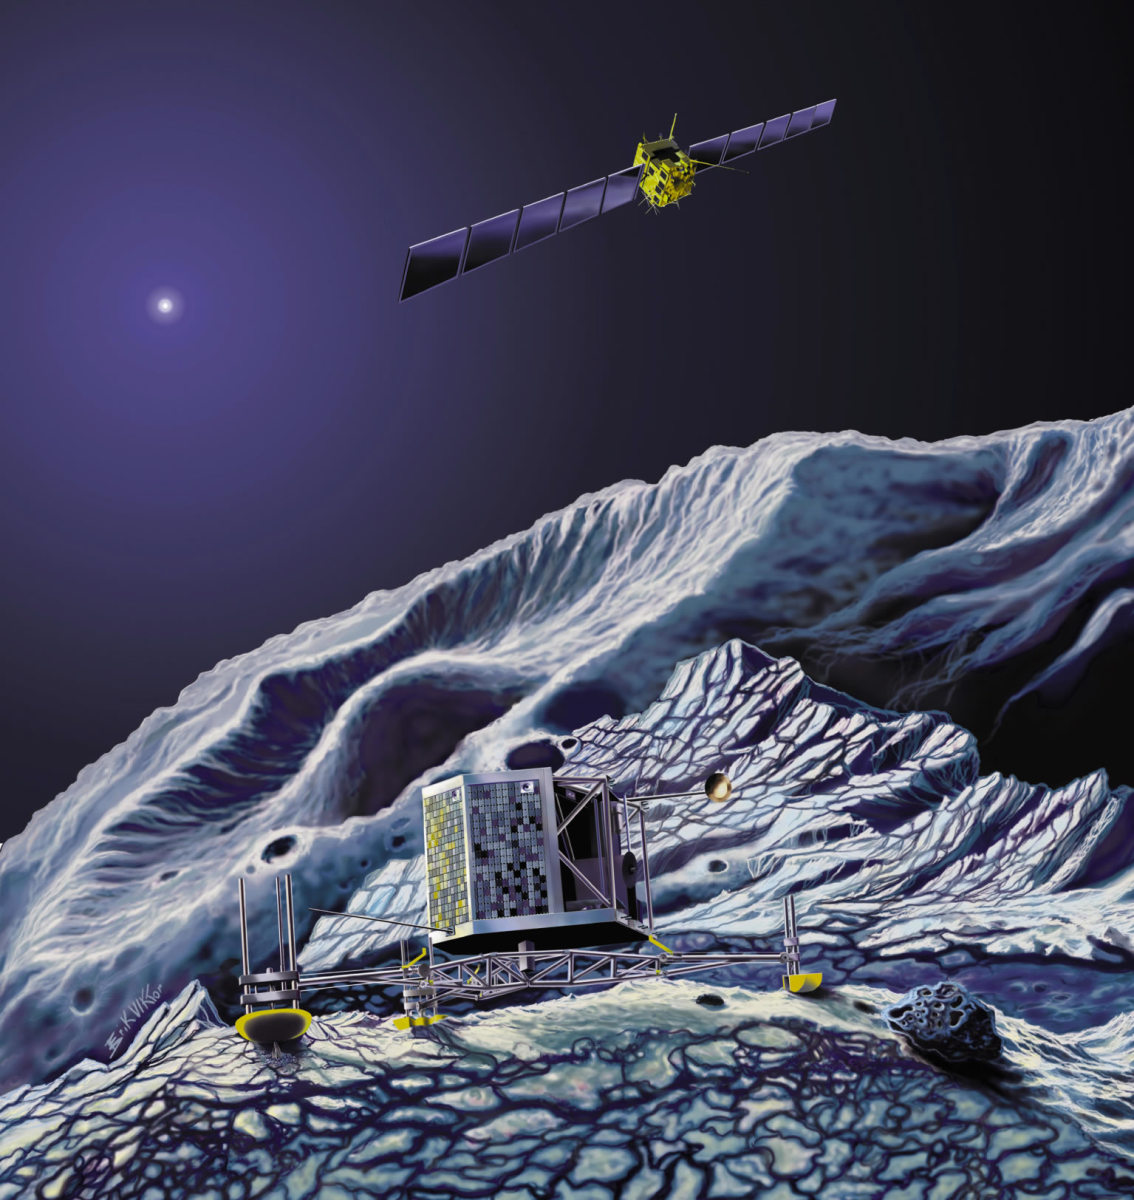 What Was The Rosetta Space Probe? The Mission to Land Philae on Comet 67P/Churyumov-Gerasimenko